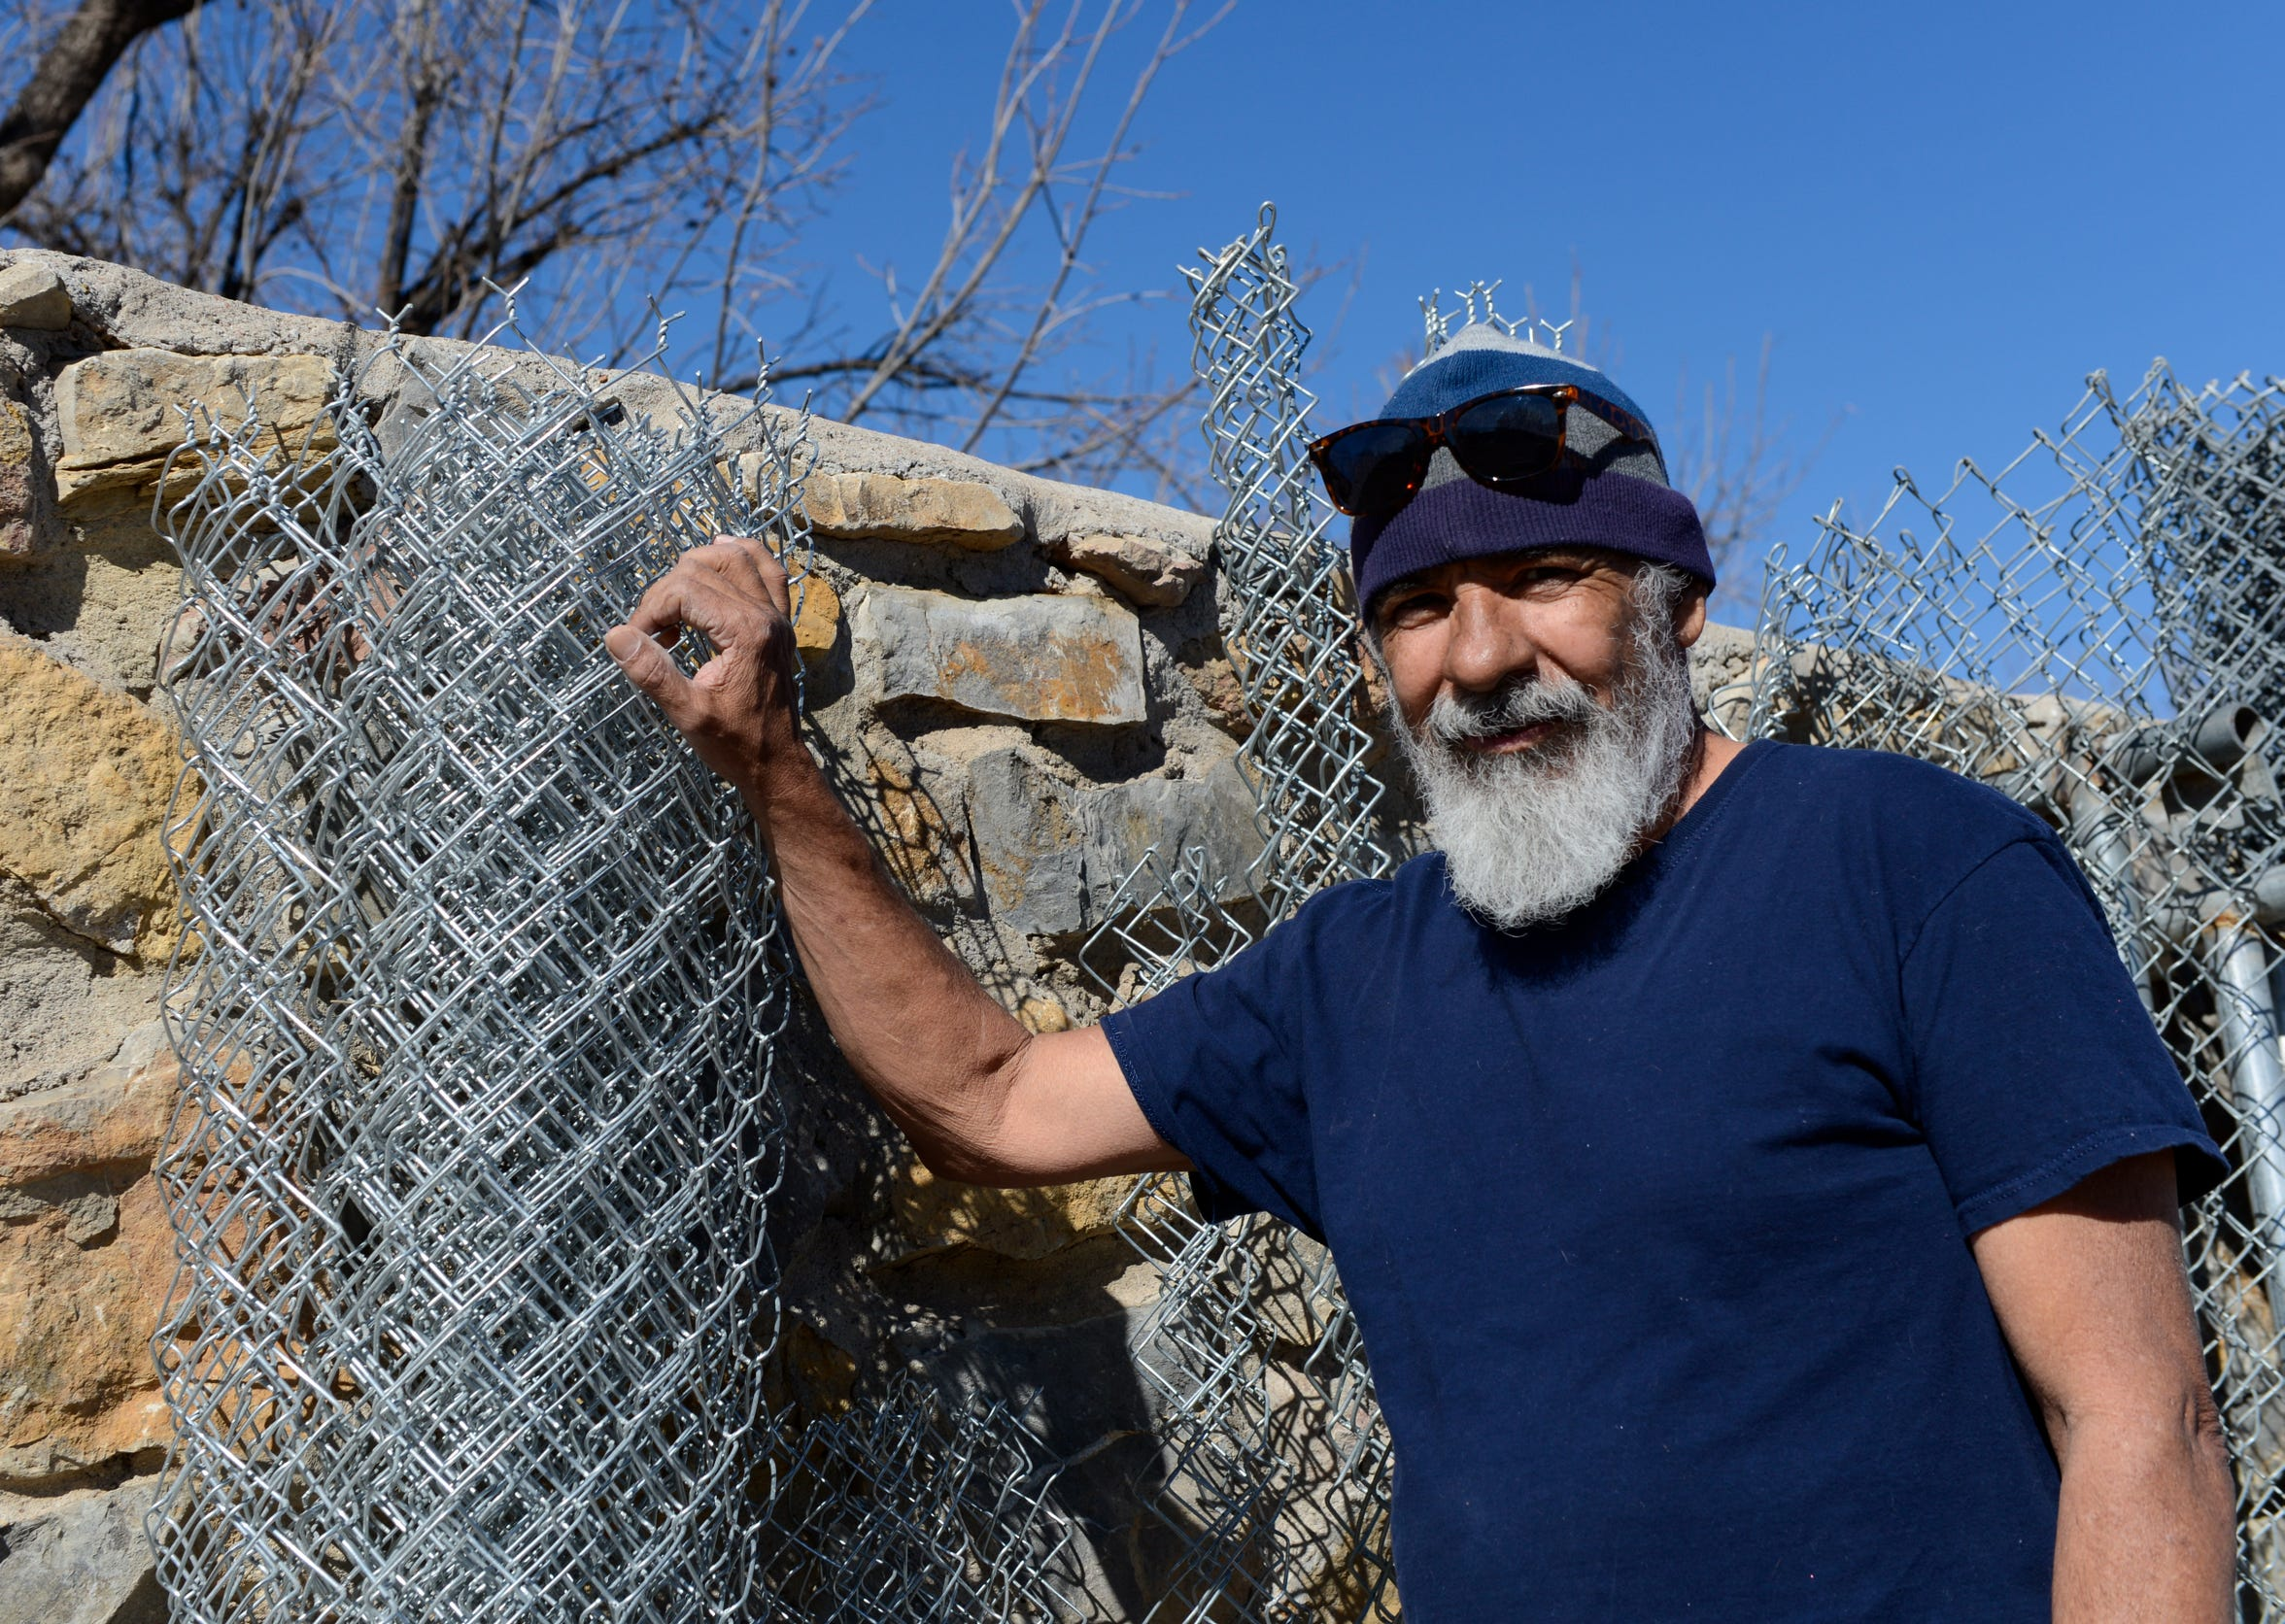 Lorenzo Fernandez, 61, of Old Picacho likely contracted valley fever while installing fences.